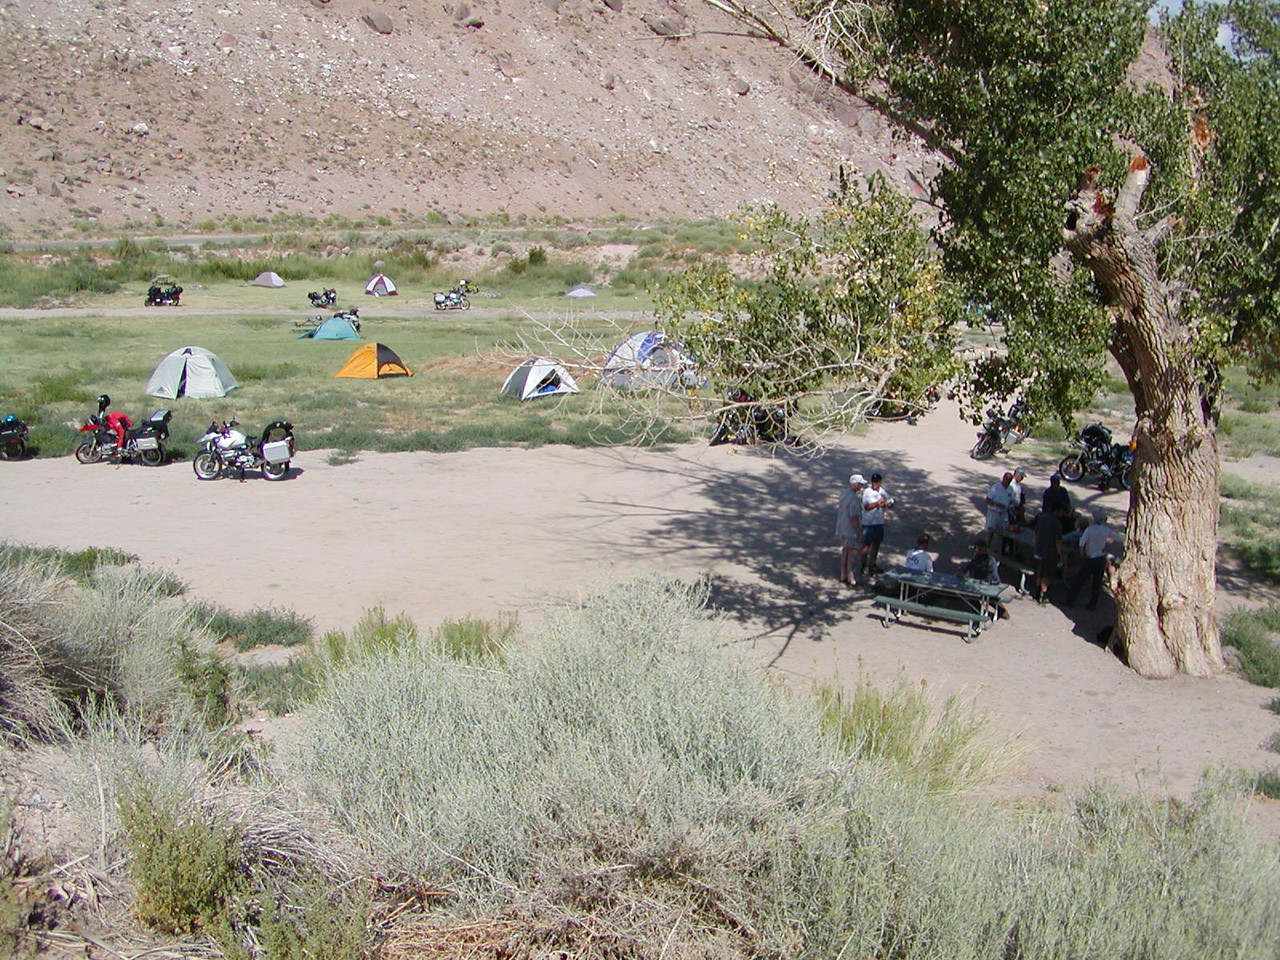 View from above the campground